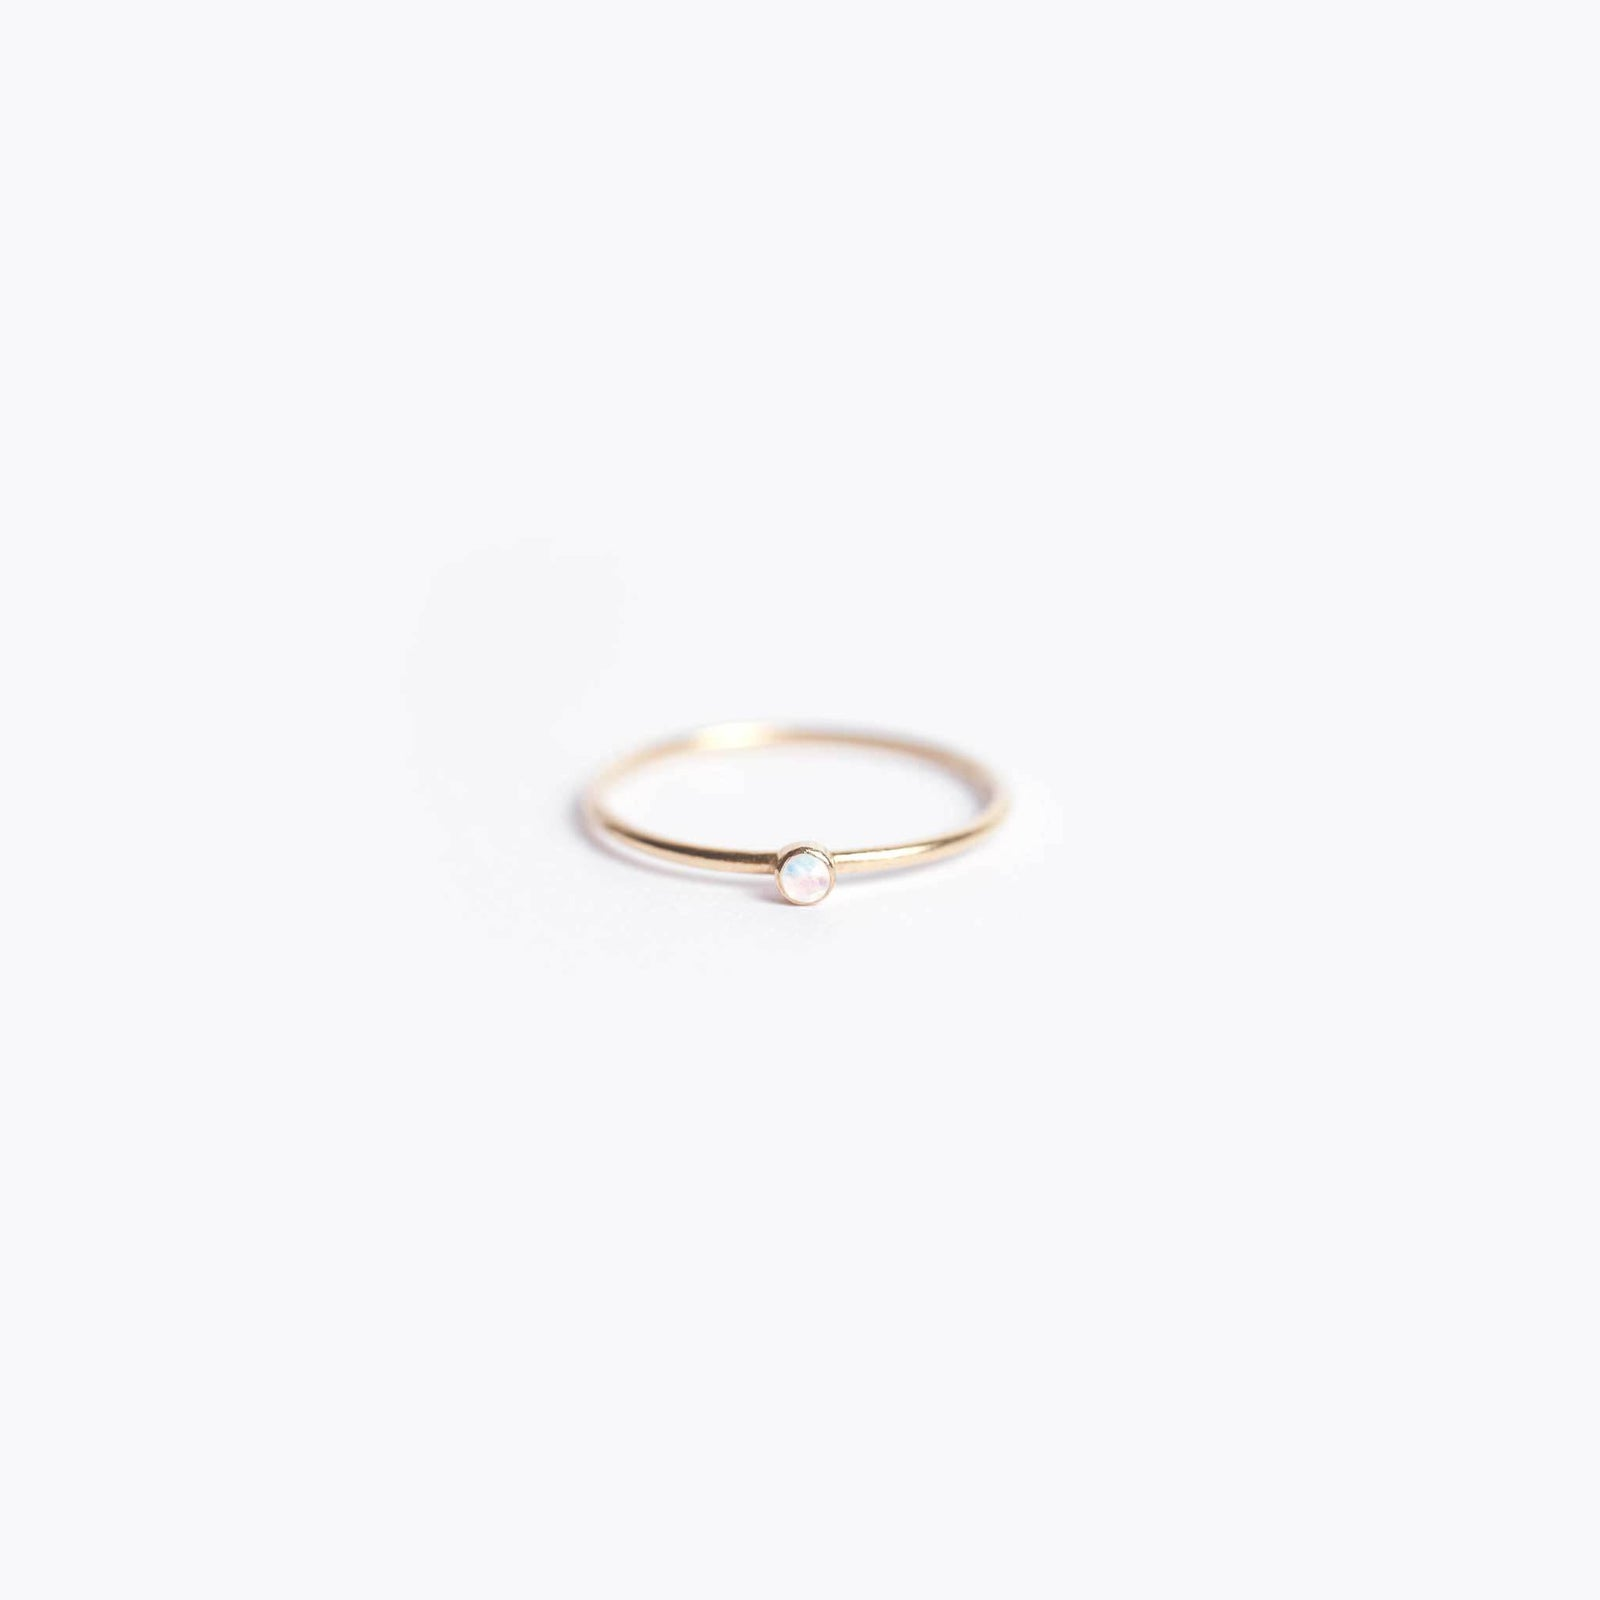 Wanderlust Life Ethically Handmade jewellery made in the UK. Minimalist gold and fine cord jewellery. unity ring, moonstone